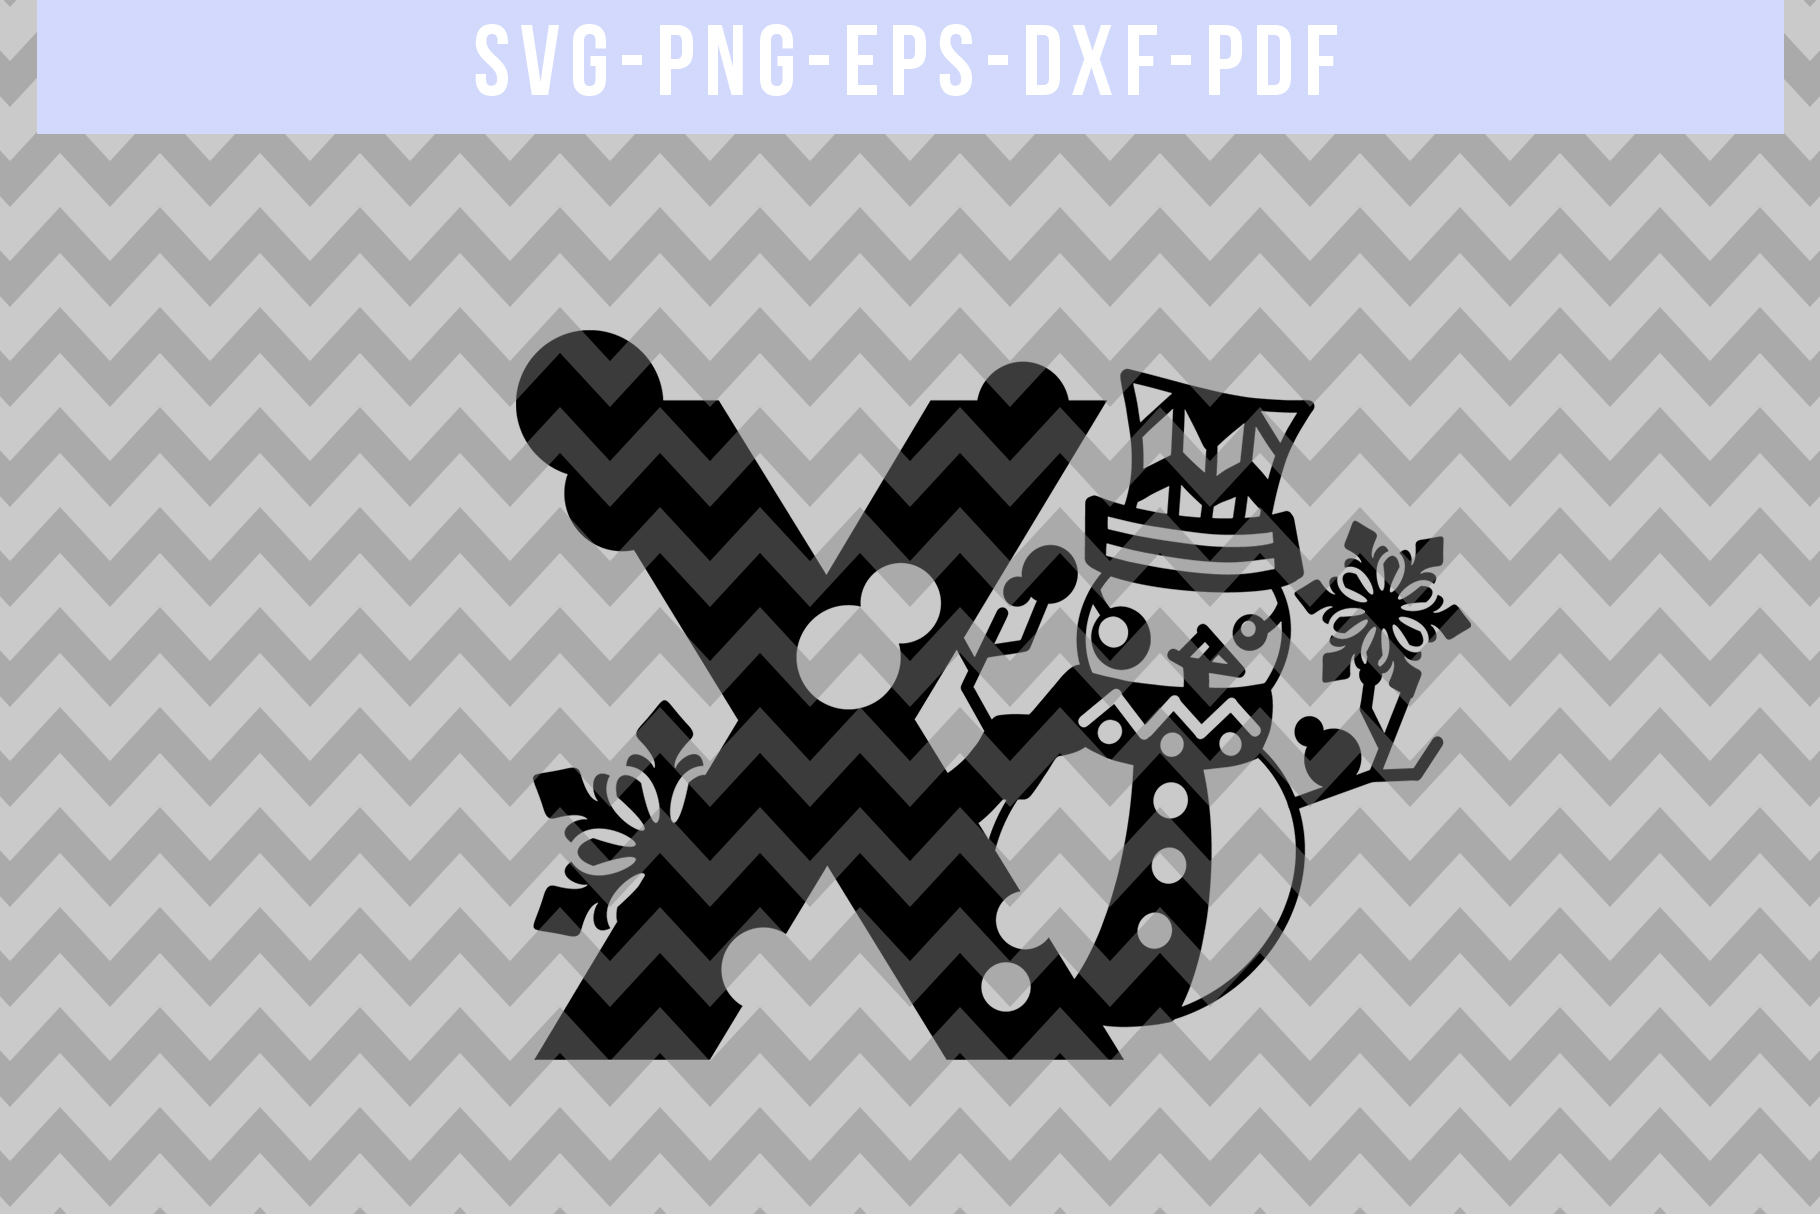 Snowman Font X Paper Cut Template, Winter Cutting SVG, DXF example image 3